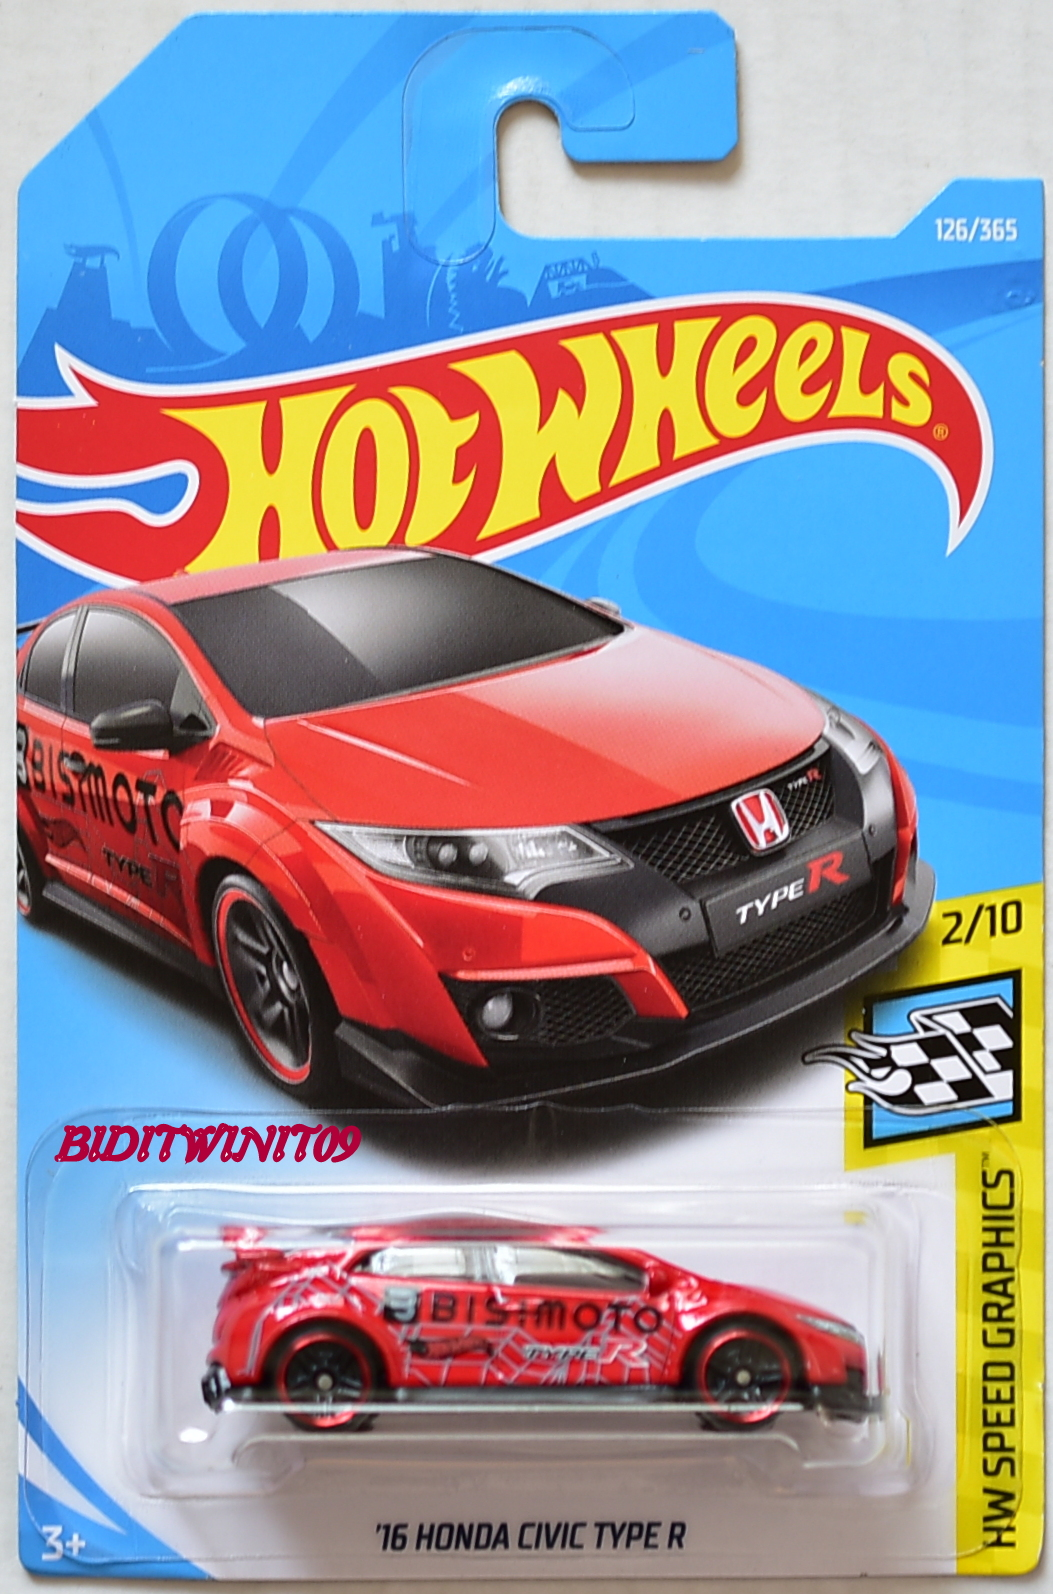 HOT WHEELS 2018 HW SPEED GRAPHICS '16 HONDA CIVIC TYPE R #2/10 RED